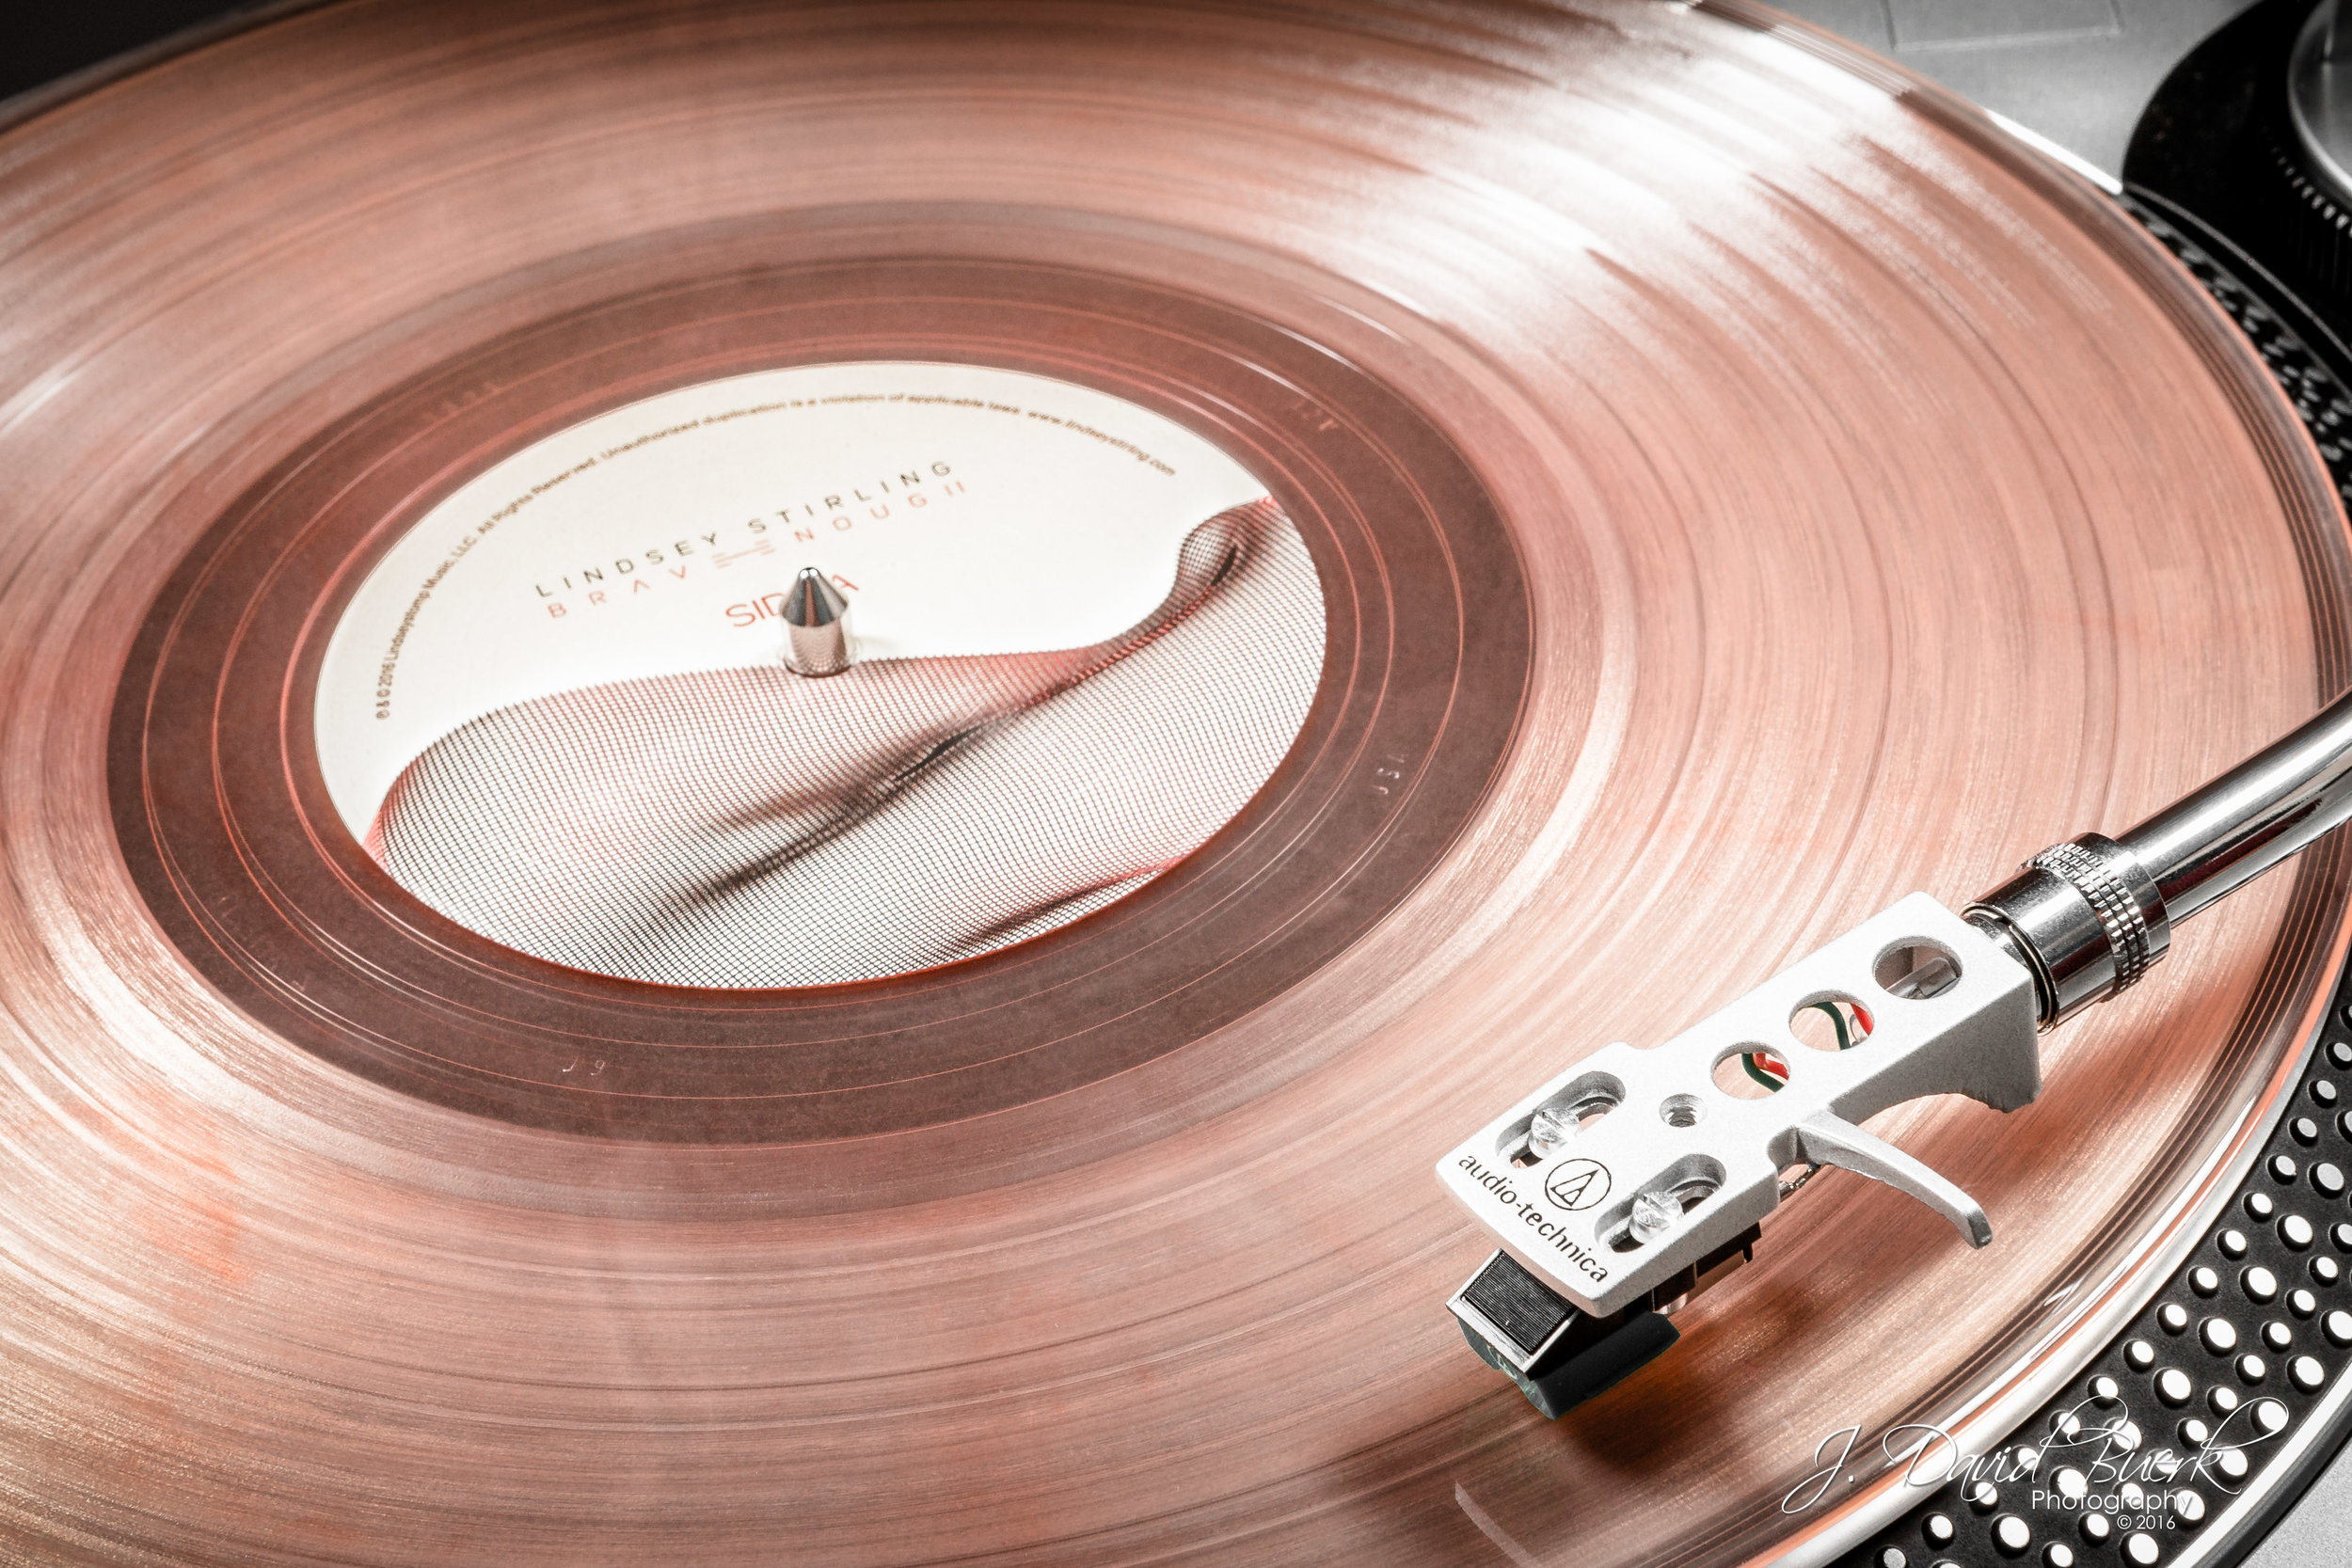 "A limited edition Translucent Pink autographed Lindsey Stirling ""Shatter Me"" 33 RPM vinyl on an Audio-Technica turntable."